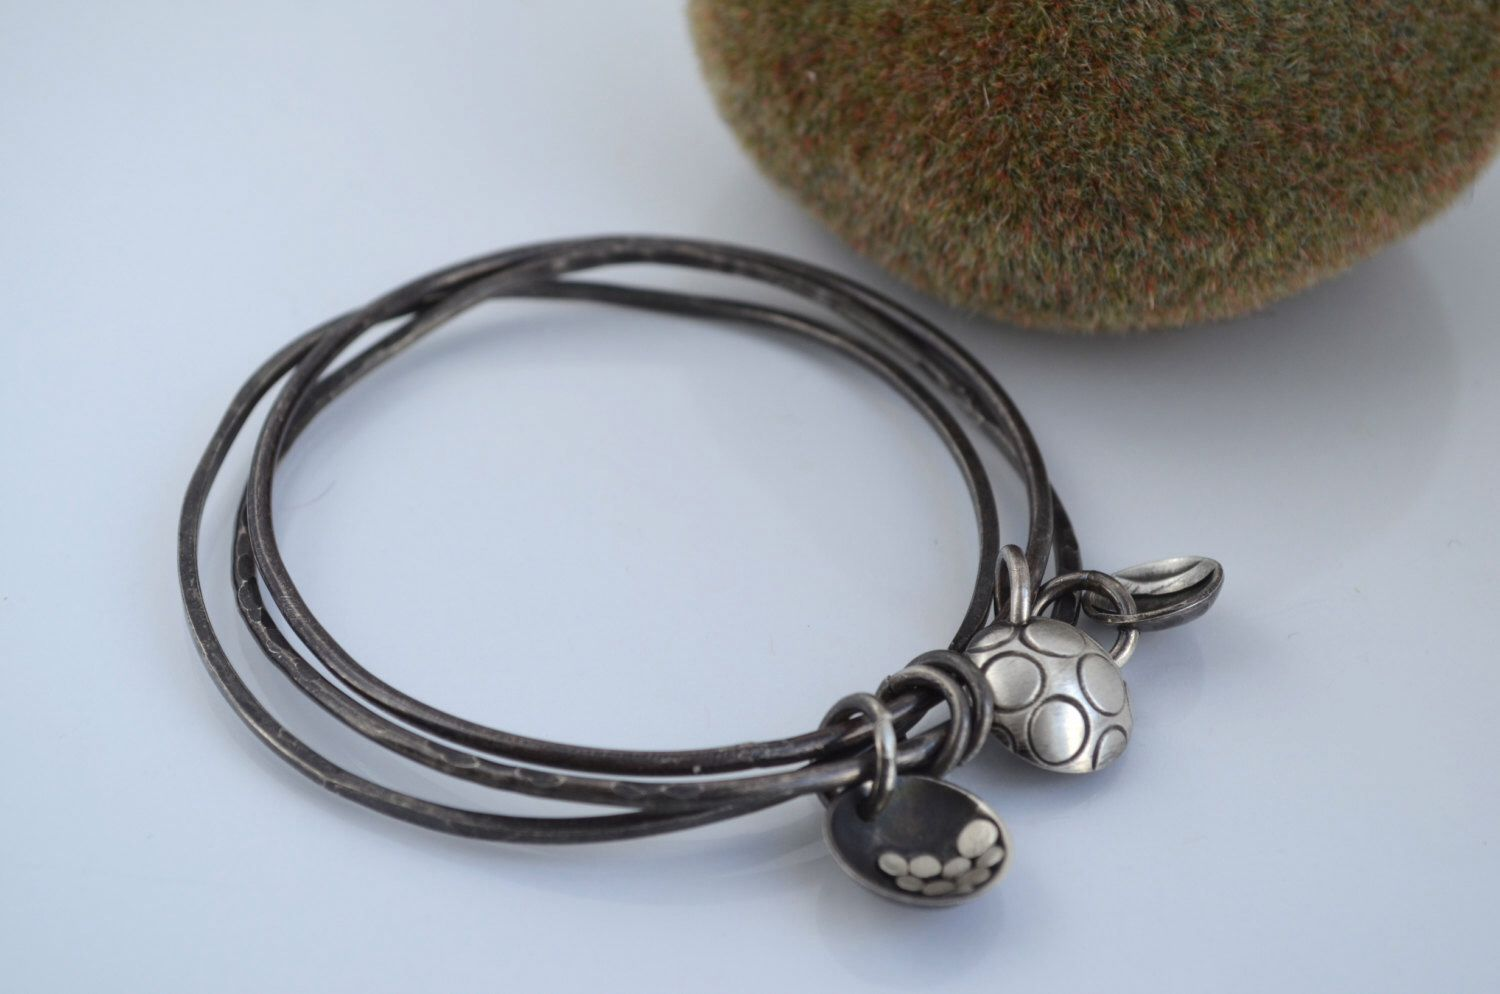 A Trio of Sterling Silver Bangles with Handmade Charms by ReaganHayhurst on Etsy https://www.etsy.com/listing/220446775/a-trio-of-sterling-silver-bangles-with